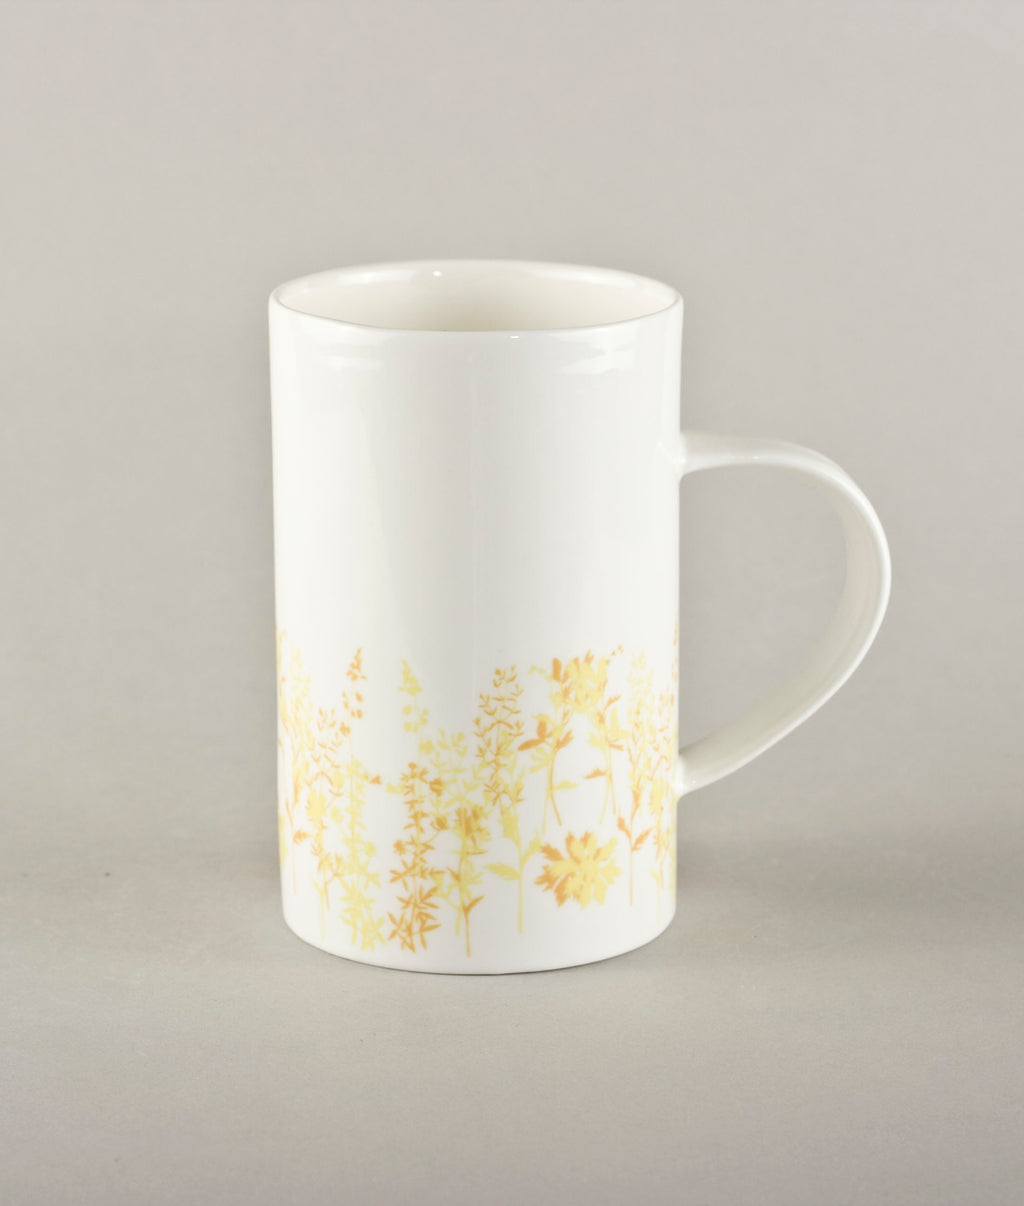 Meadow 2. Medium Mug